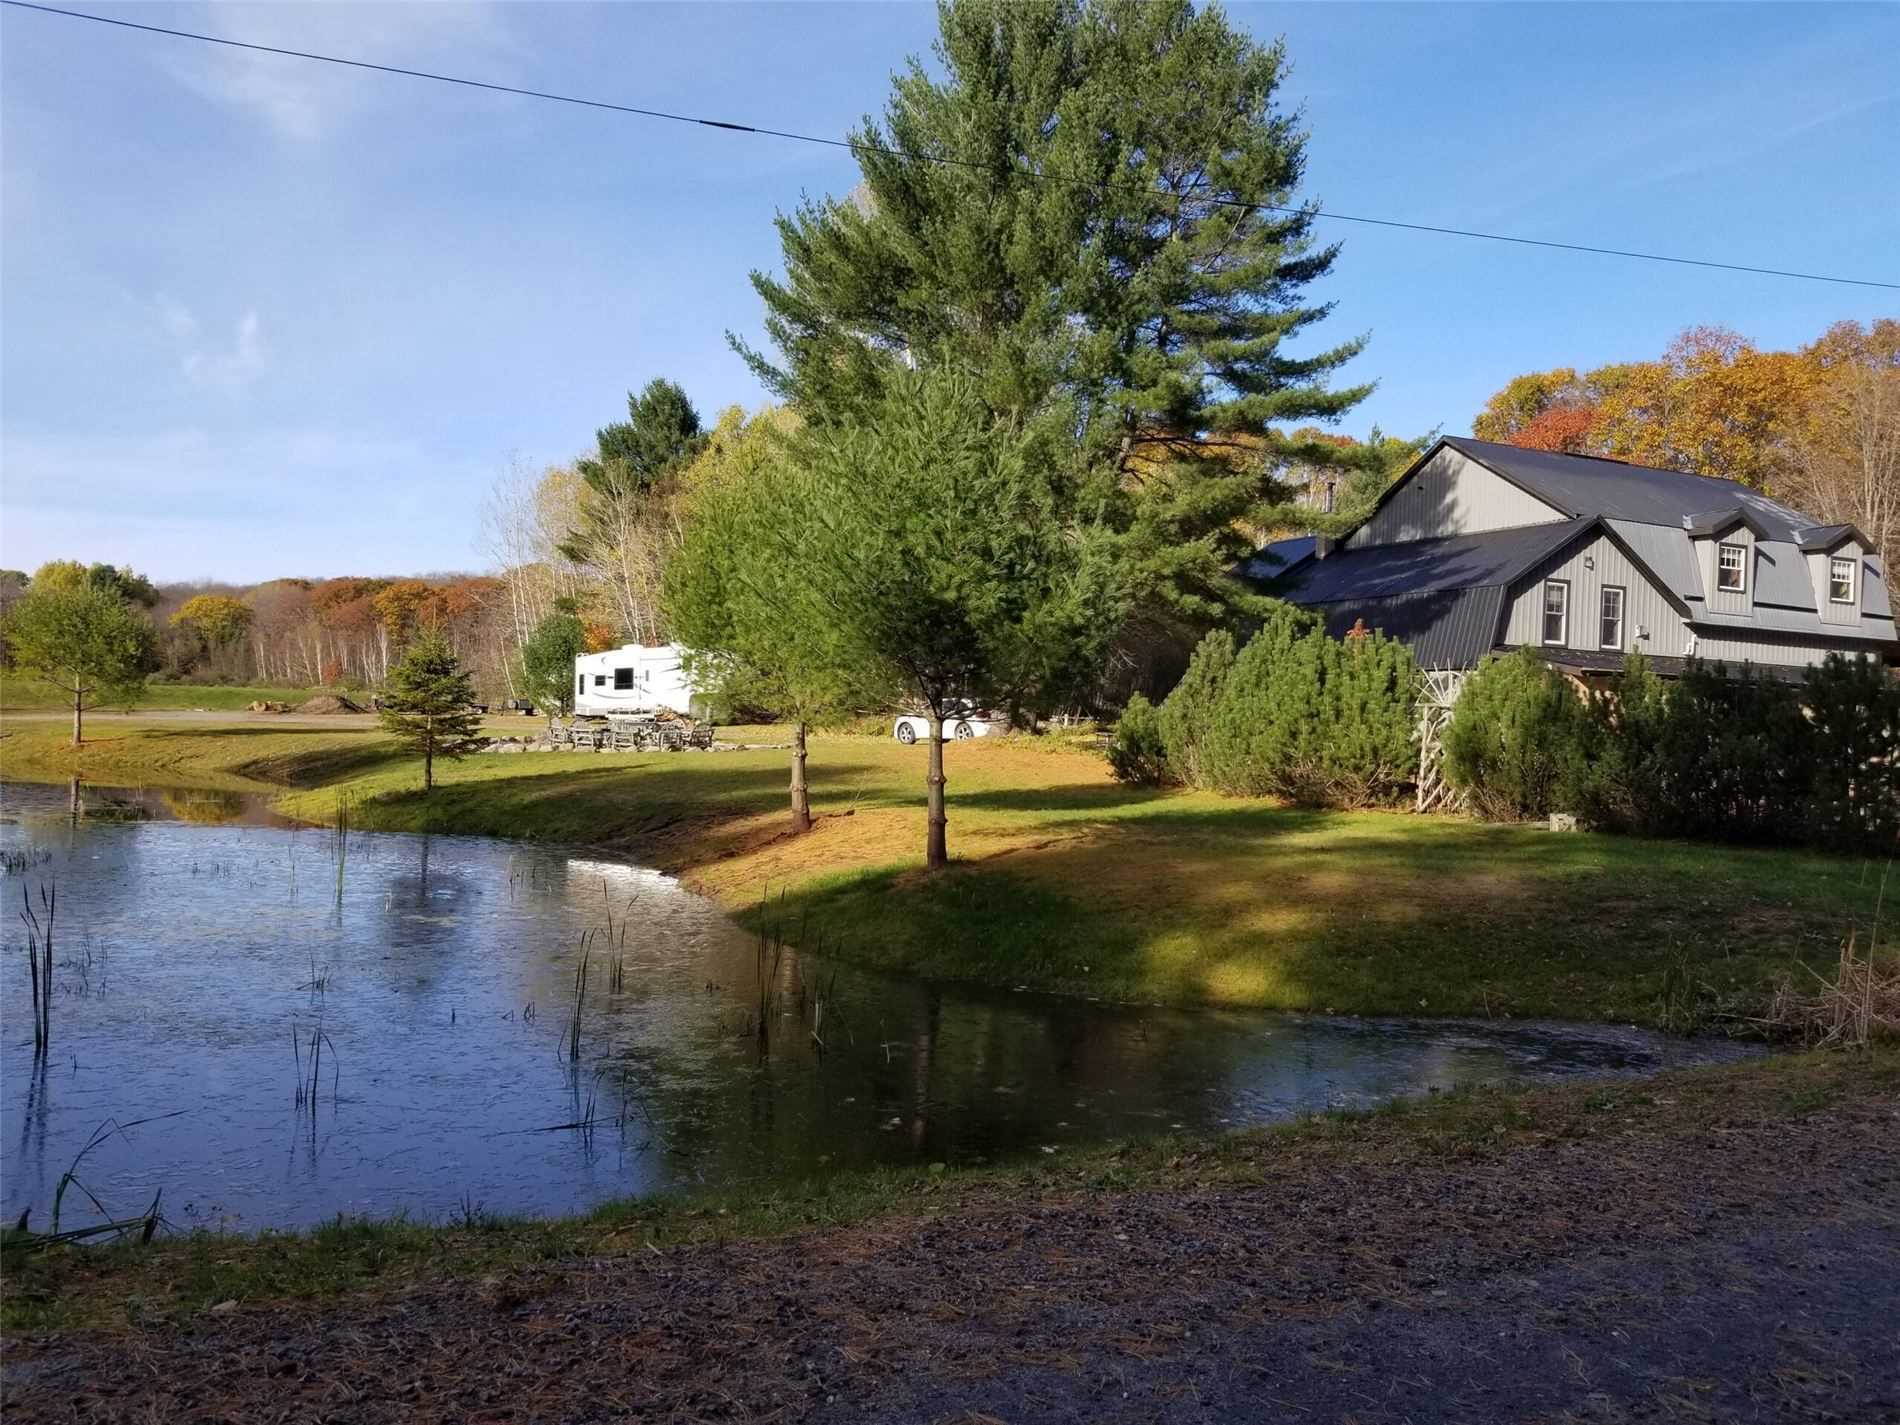 1058 Youngs Rd, Muskoka Lakes, Ontario P0B 1J0, 3 Bedrooms Bedrooms, 7 Rooms Rooms,3 BathroomsBathrooms,Rural Resid,For Sale,Youngs,X4840188